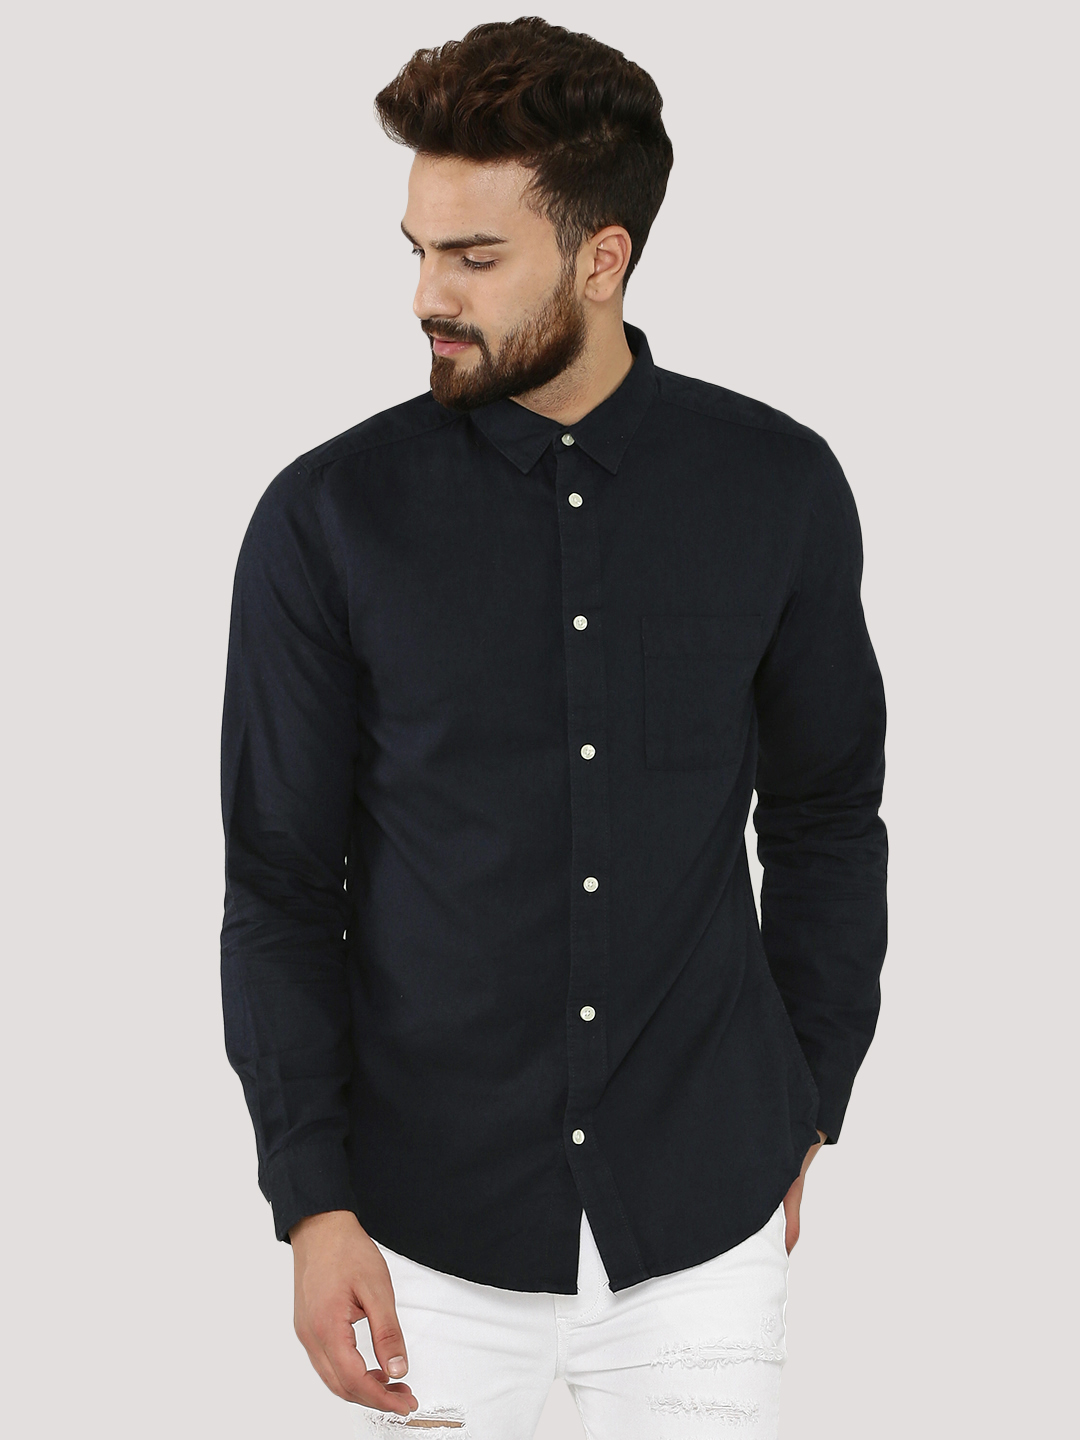 New Look Navy Twill Shirt 1